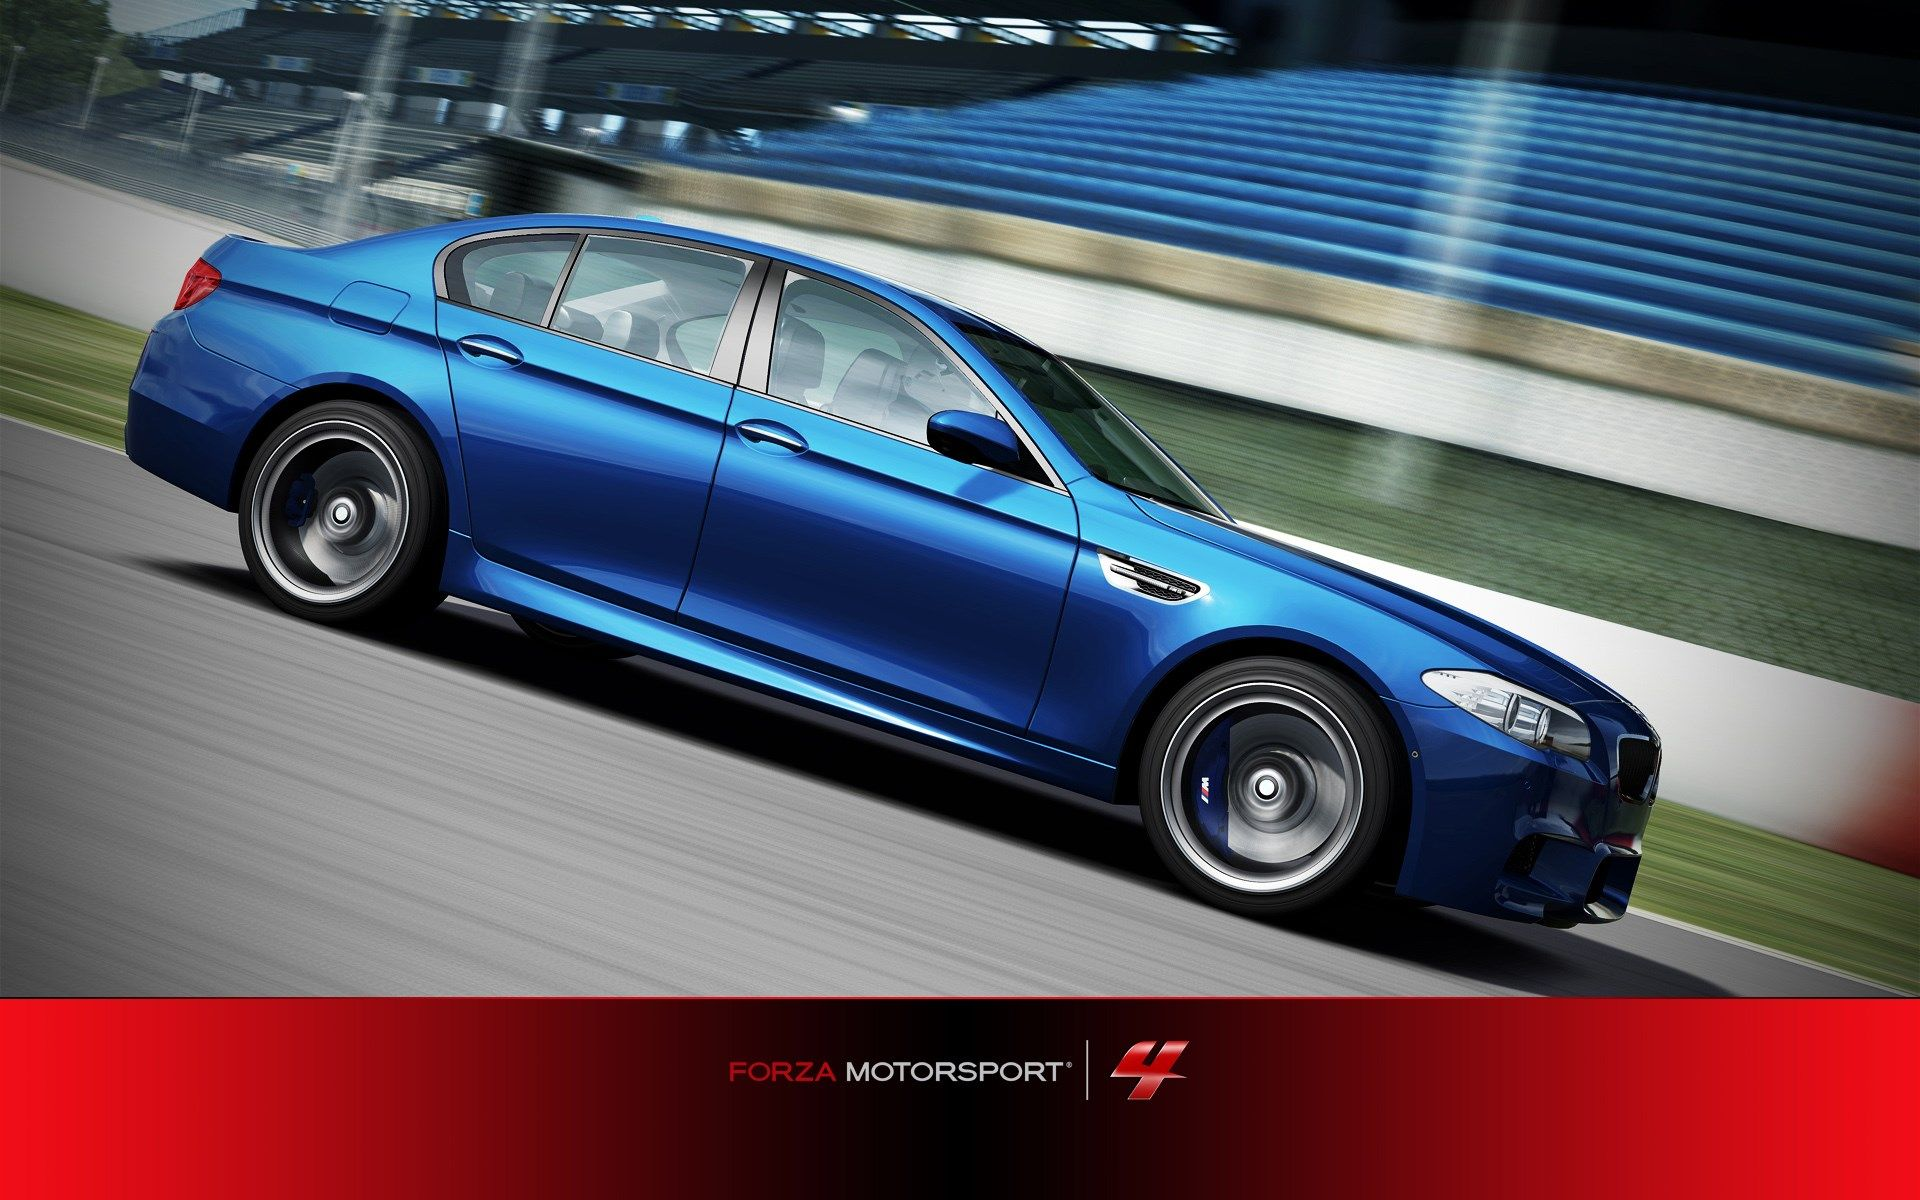 forza motorsport 4 Background hd Forza motorsport, Bmw